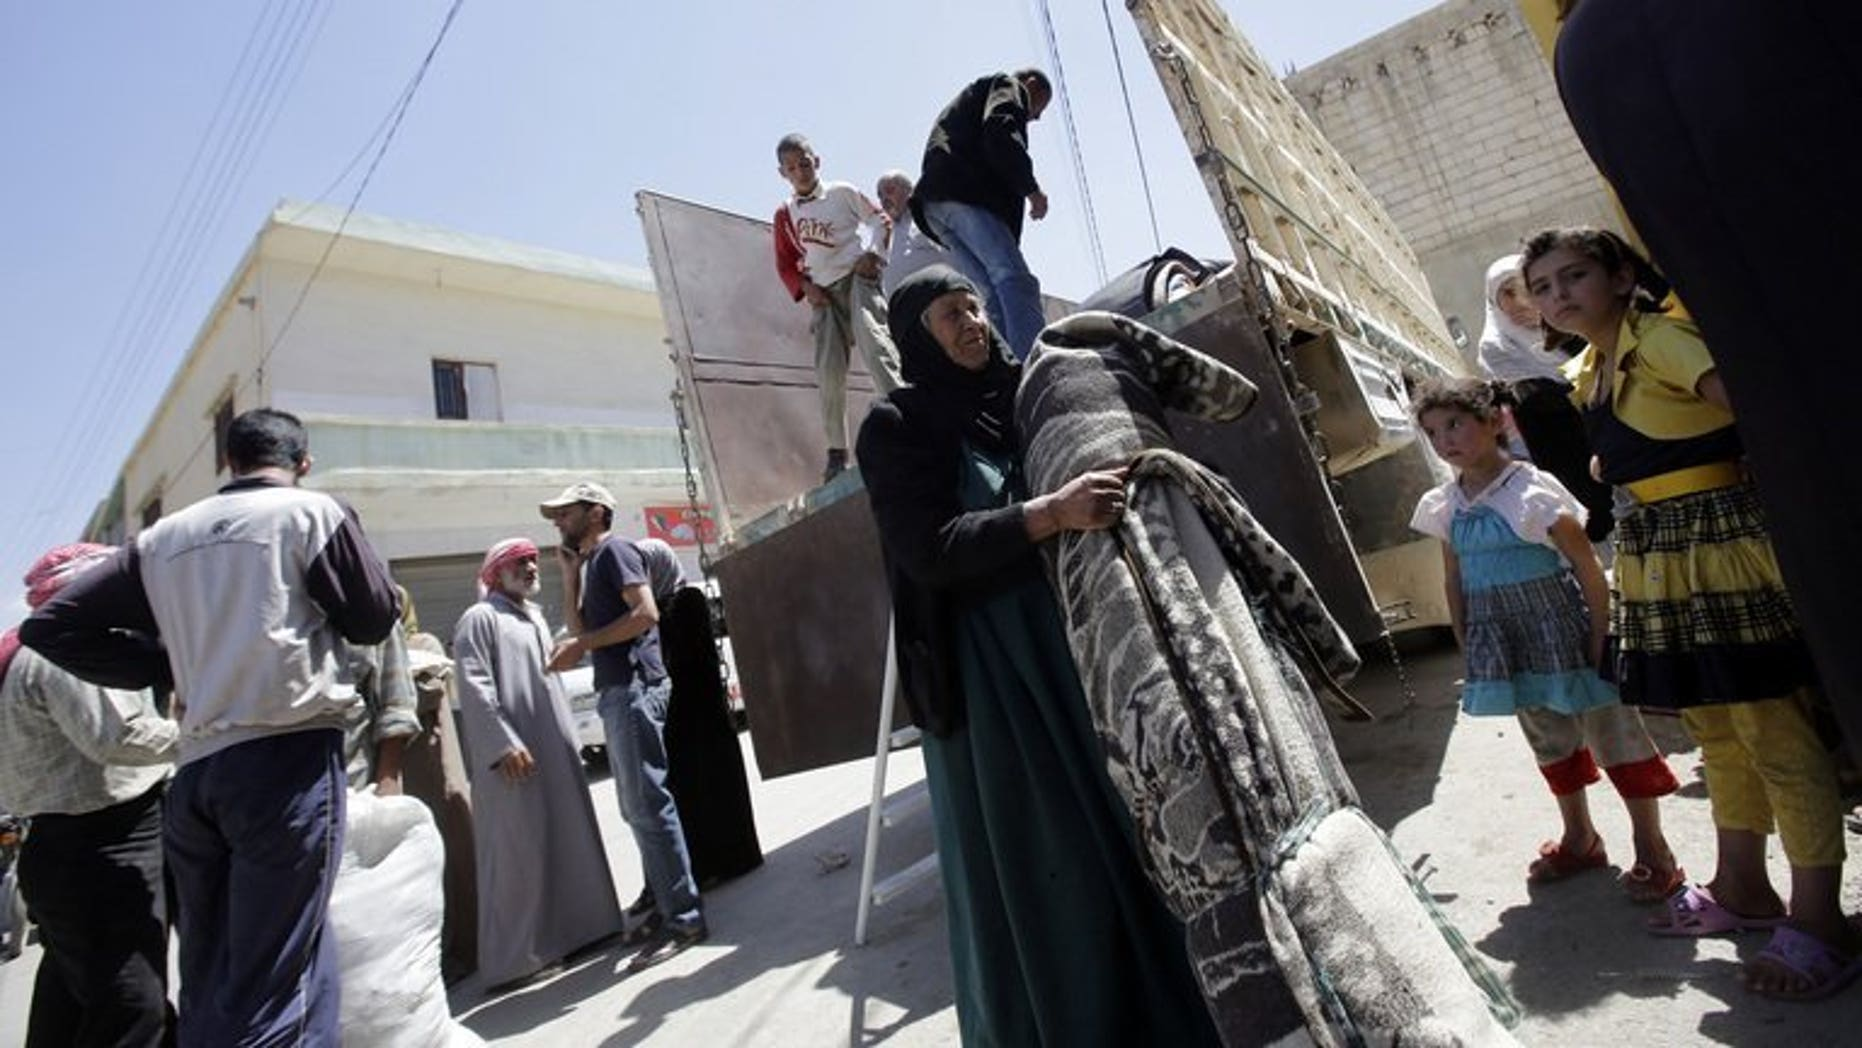 A Syrian woman carries her belongings upon her arrival in the Bekaa valley where she will find shelter, on June 14, 2013. The Lebanese government has imposed new entry controls on Syrians in a bid to reduce friction between the host population and the 600,000 who have already crossed.